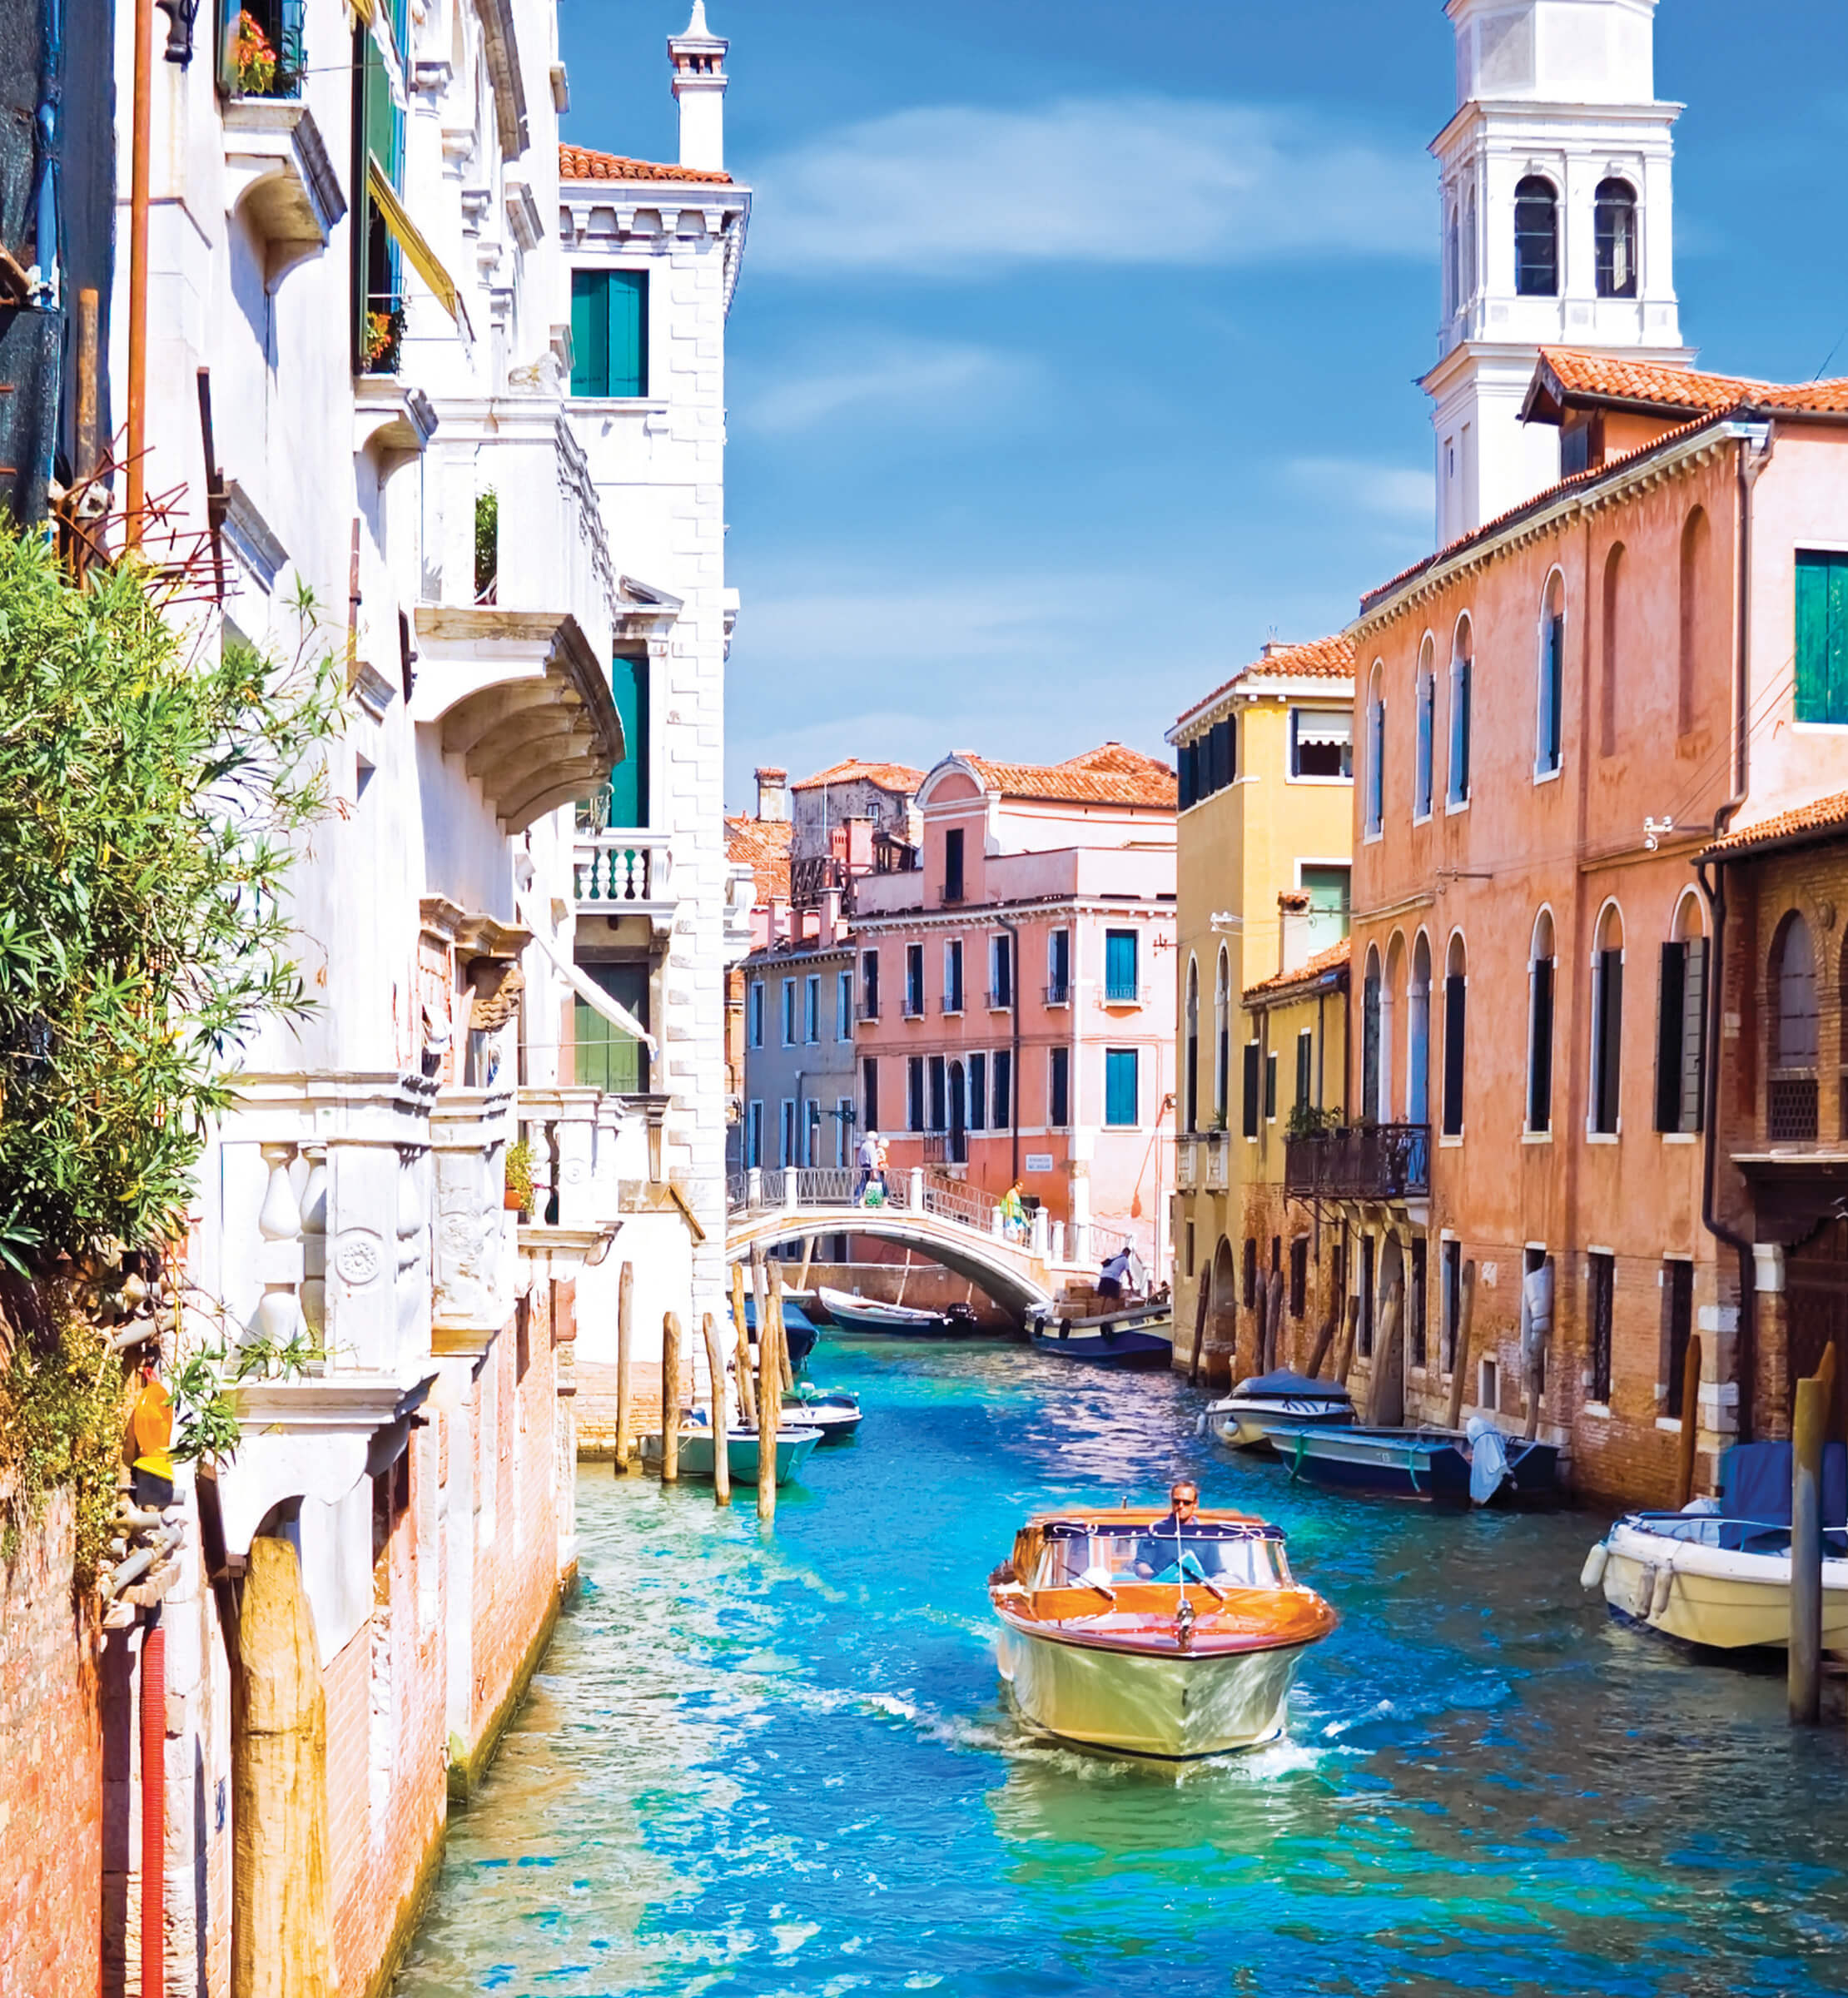 Sunny shot of a canal in Venice, with boats moared along its sides and a small stone bridge in the background